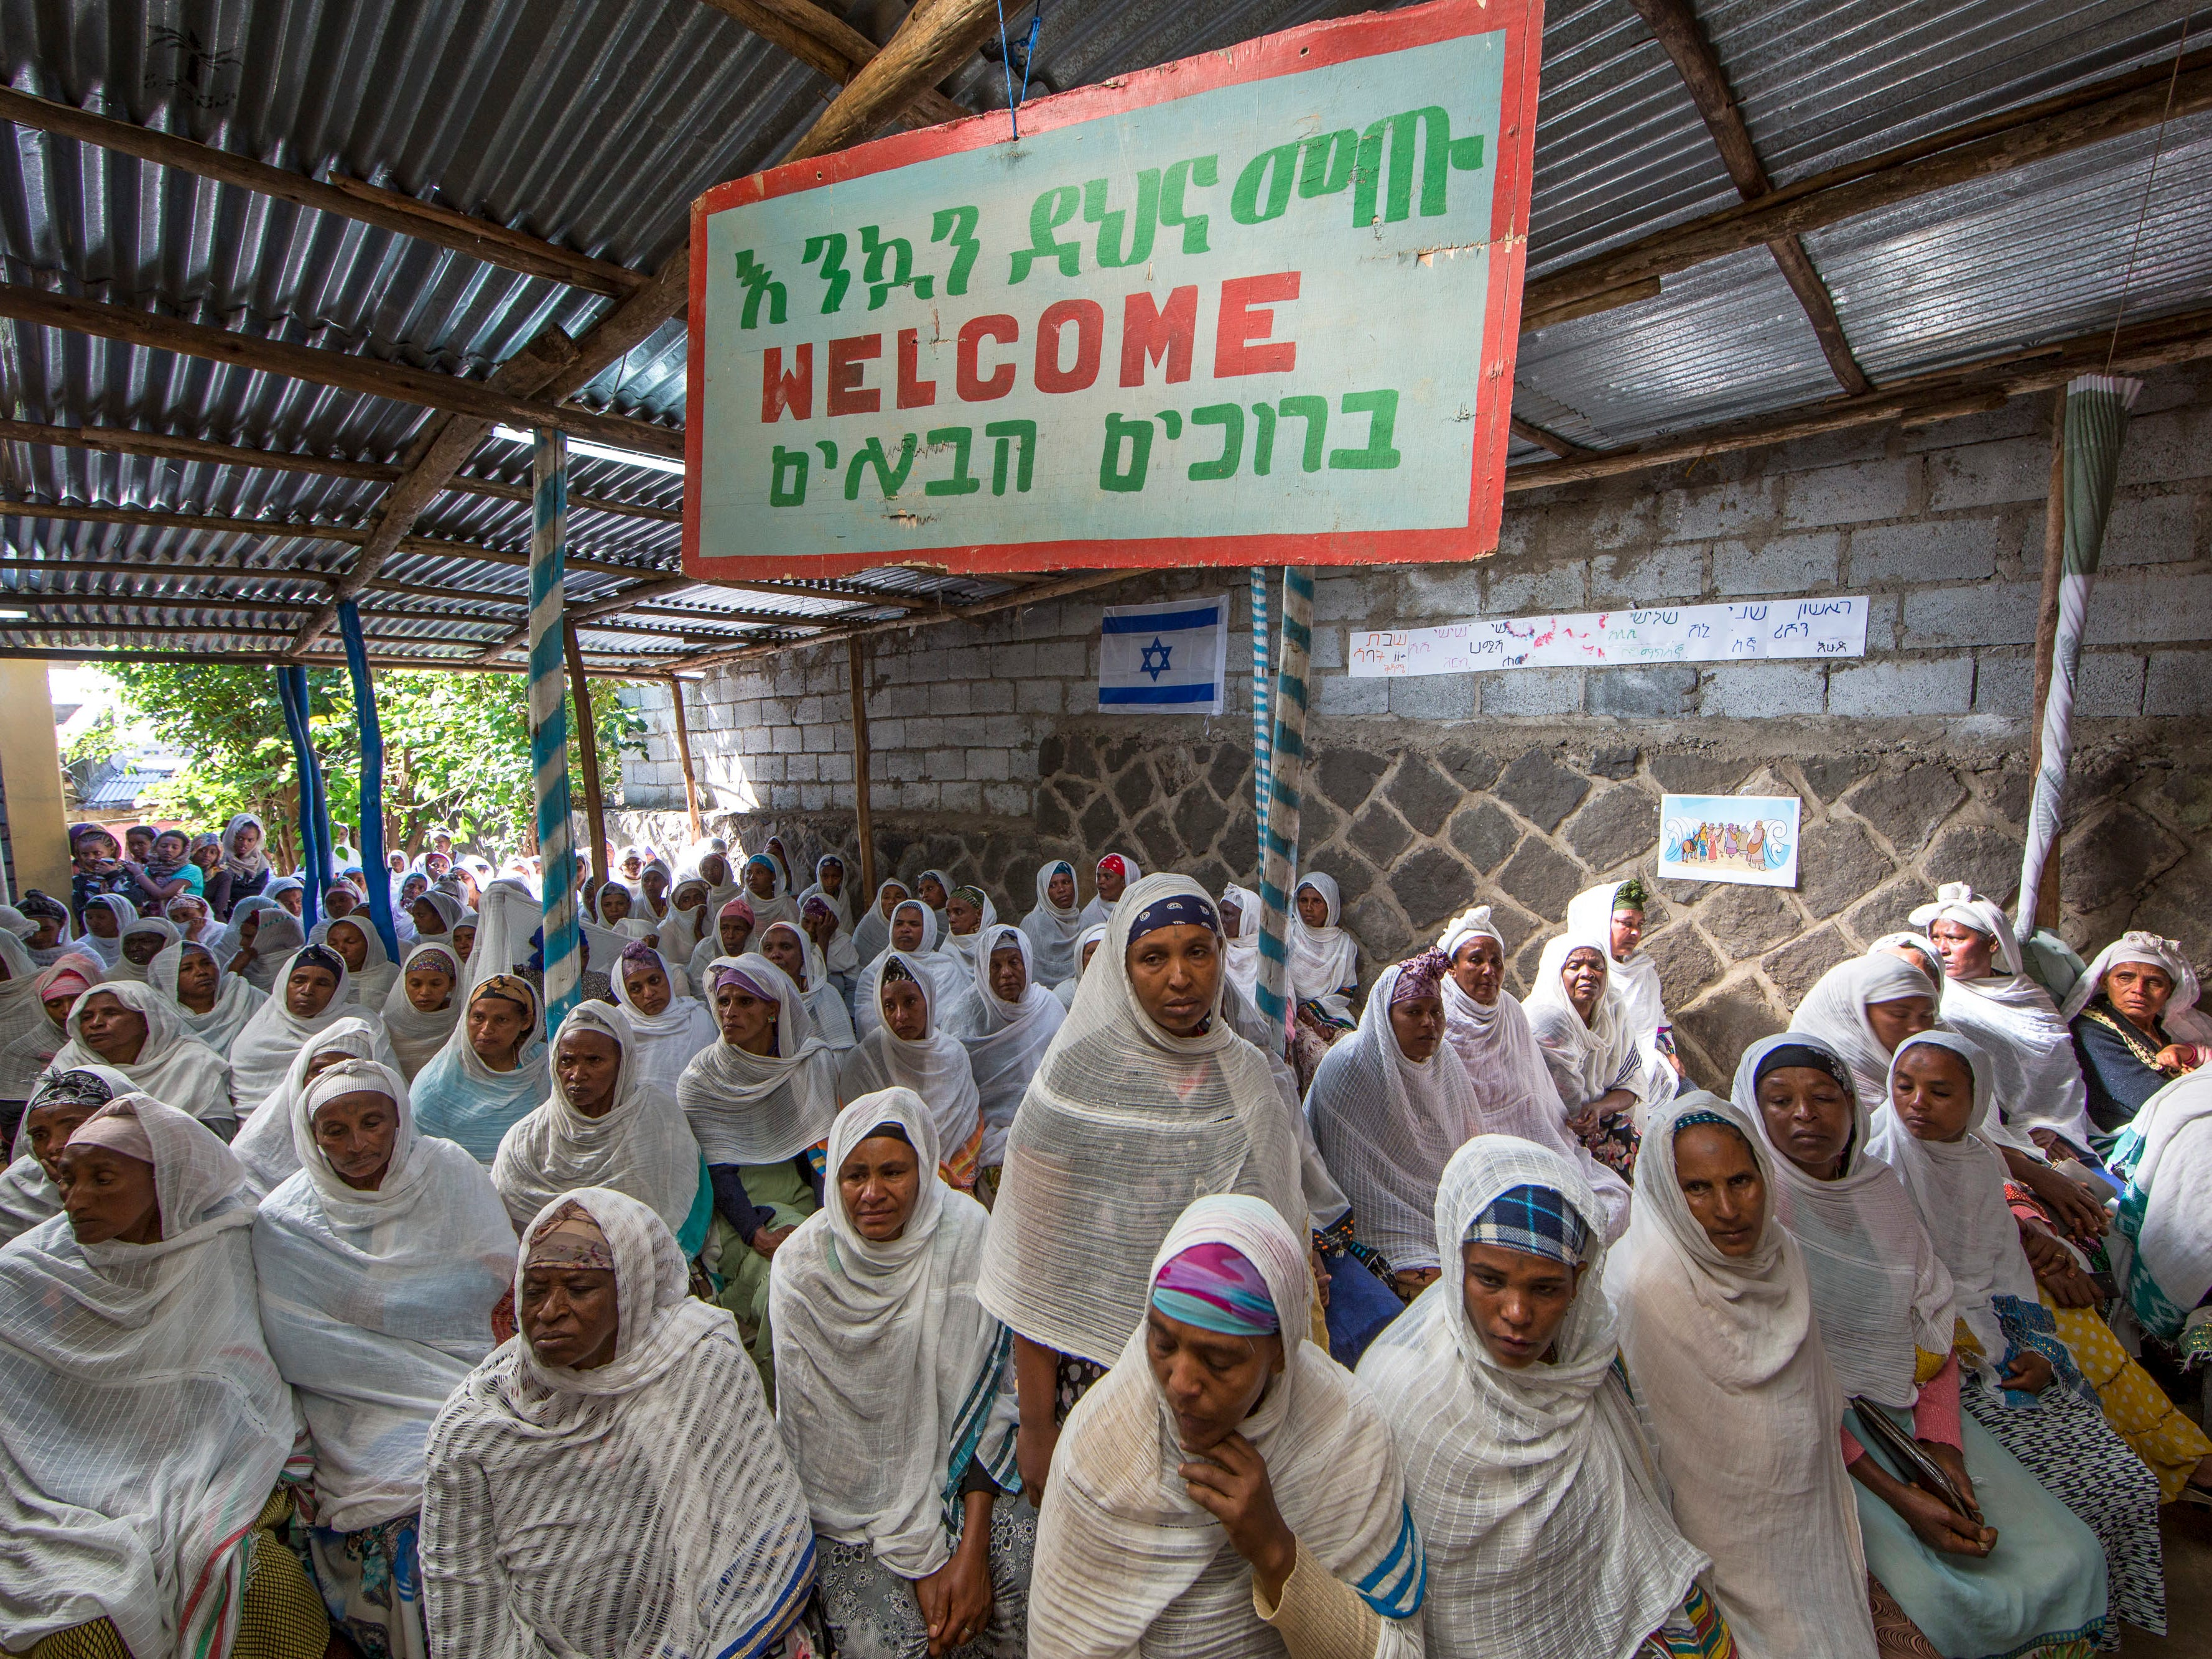 "Members of Ethiopia's Jewish community gather below a banner reading ""Welcome"" in Amharic, English and Hebrew, to protest the Israeli government's decision not to allow all of them to emigrate to Israel, leaving their families divided between the two countries, at the synagogue in Addis Ababa, Ethiopia Monday, Nov. 19, 2018. Representatives of the 8,000 Jews in Ethiopia urged the Ethiopian Jews living in Israel to think carefully before voting for Israel's ruling party, the Likud, over the delays in repatriation to Israel."